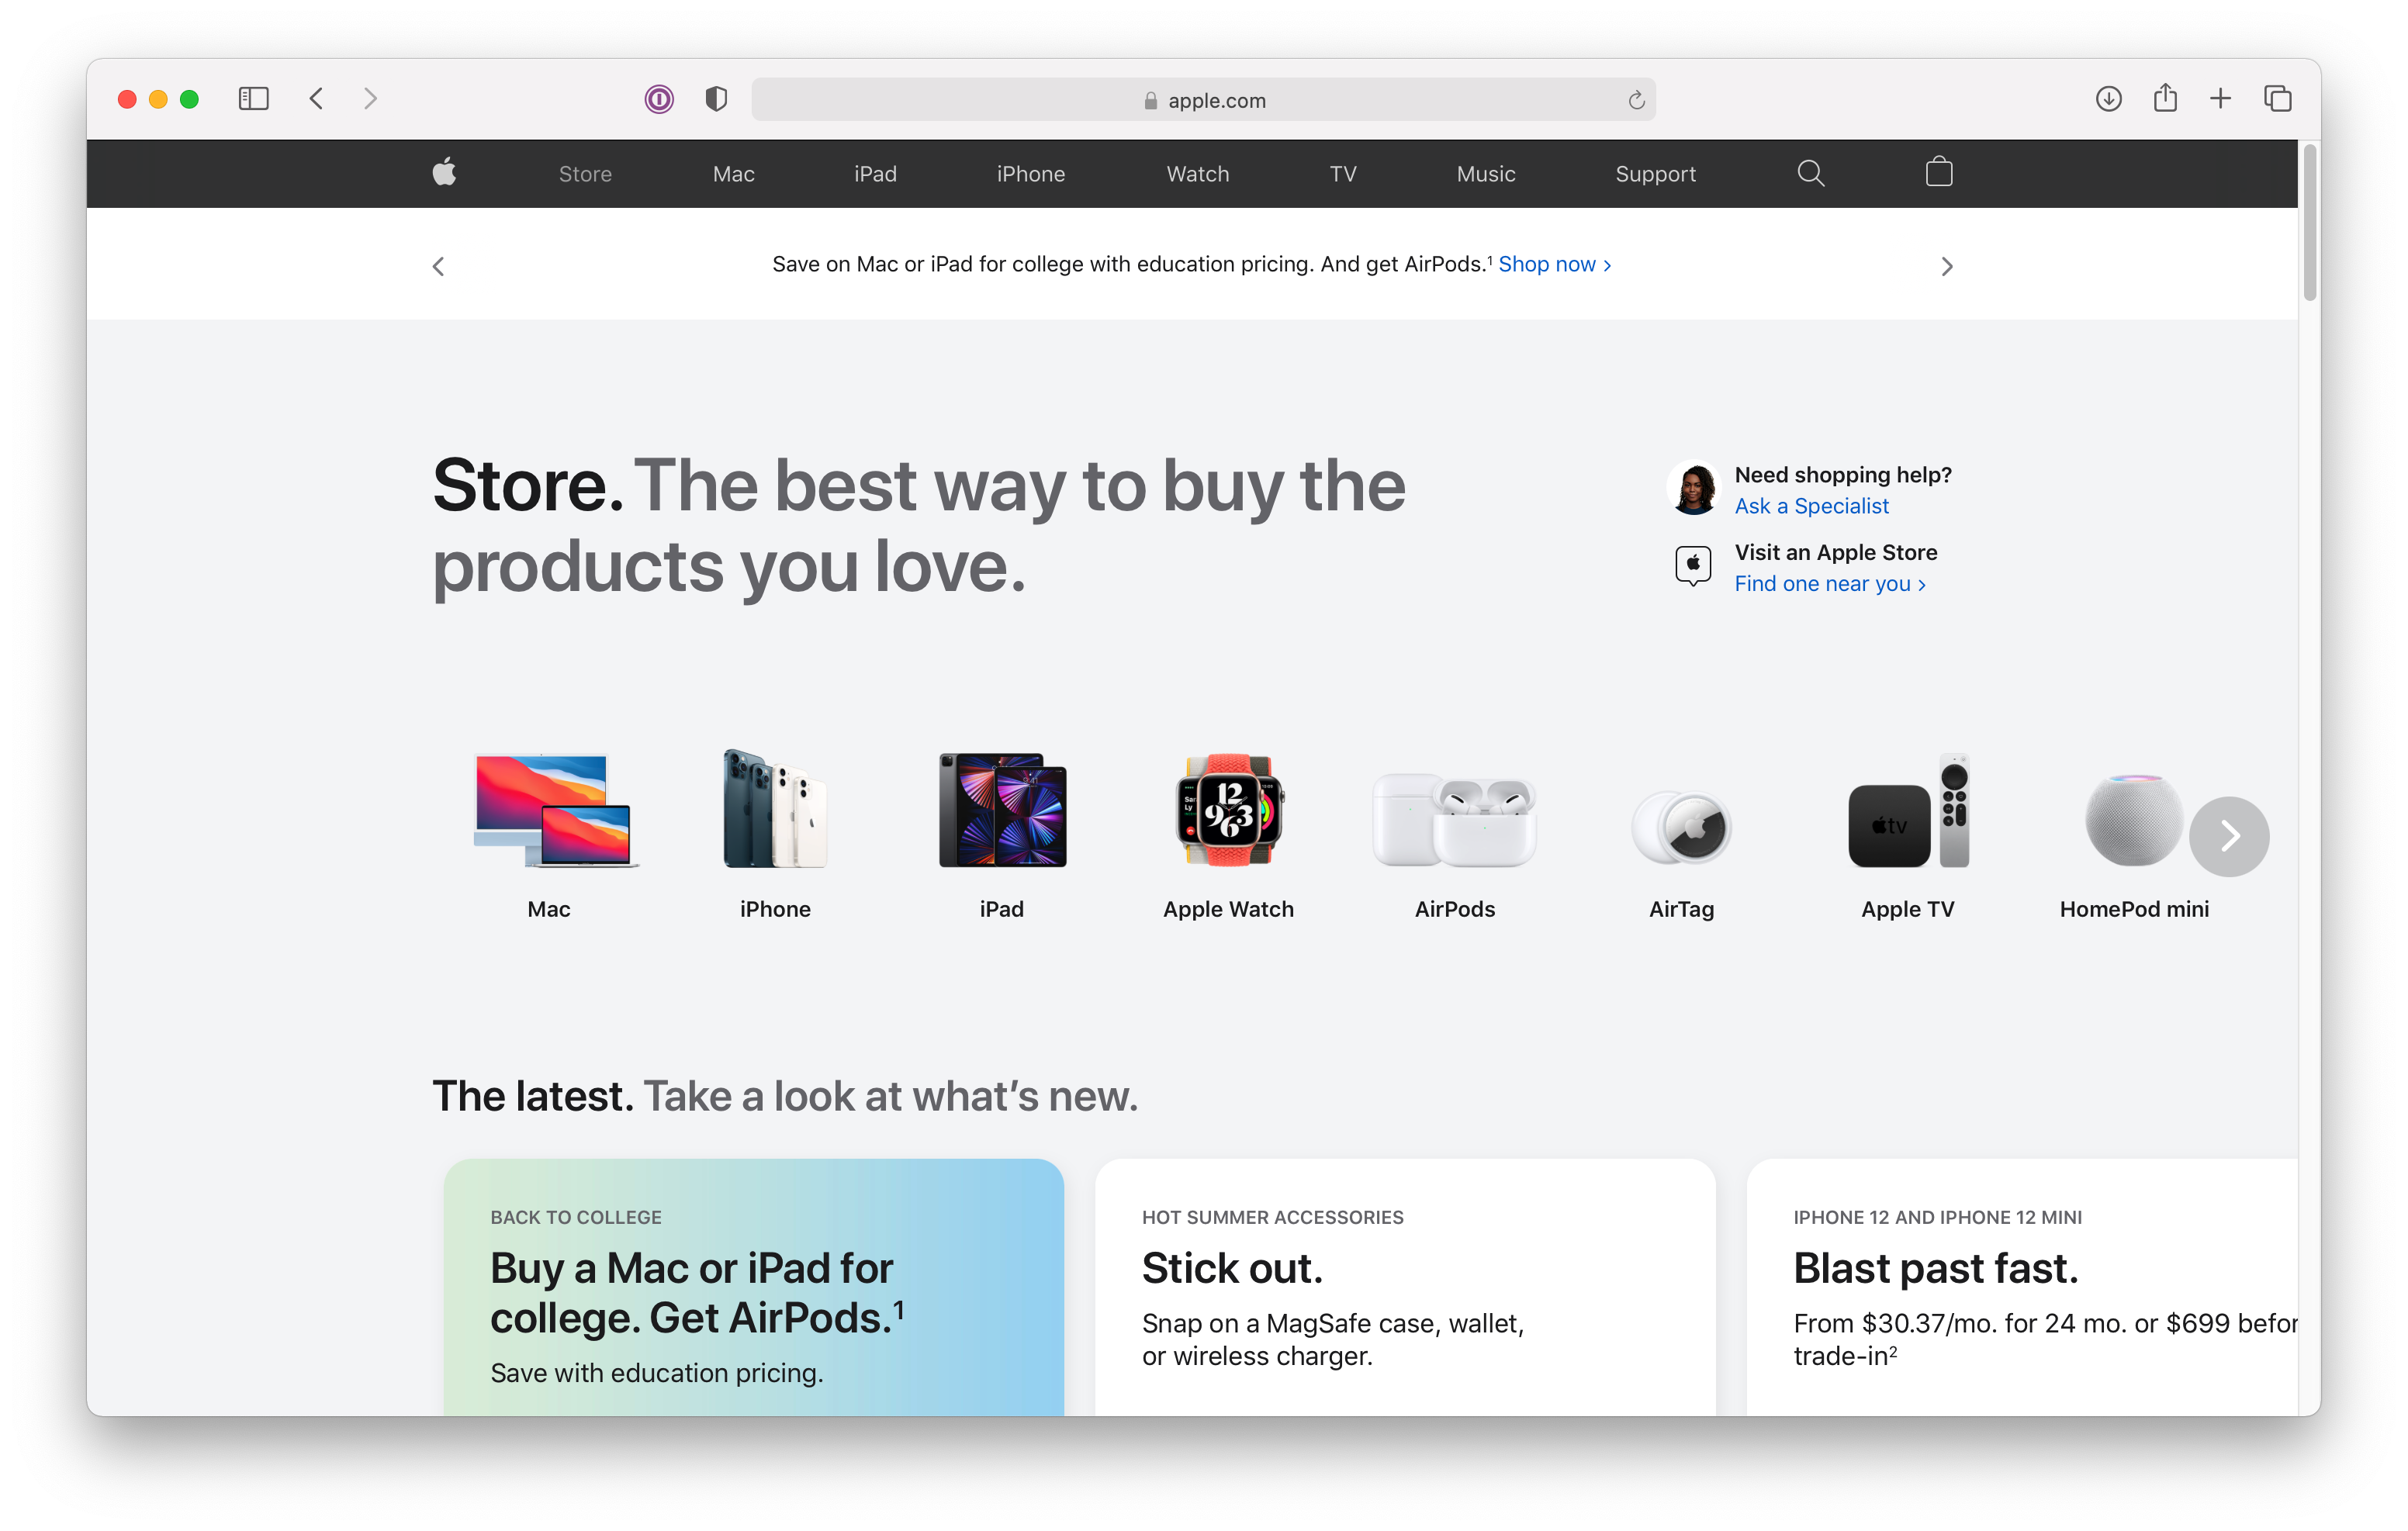 The new Store page on apple.com